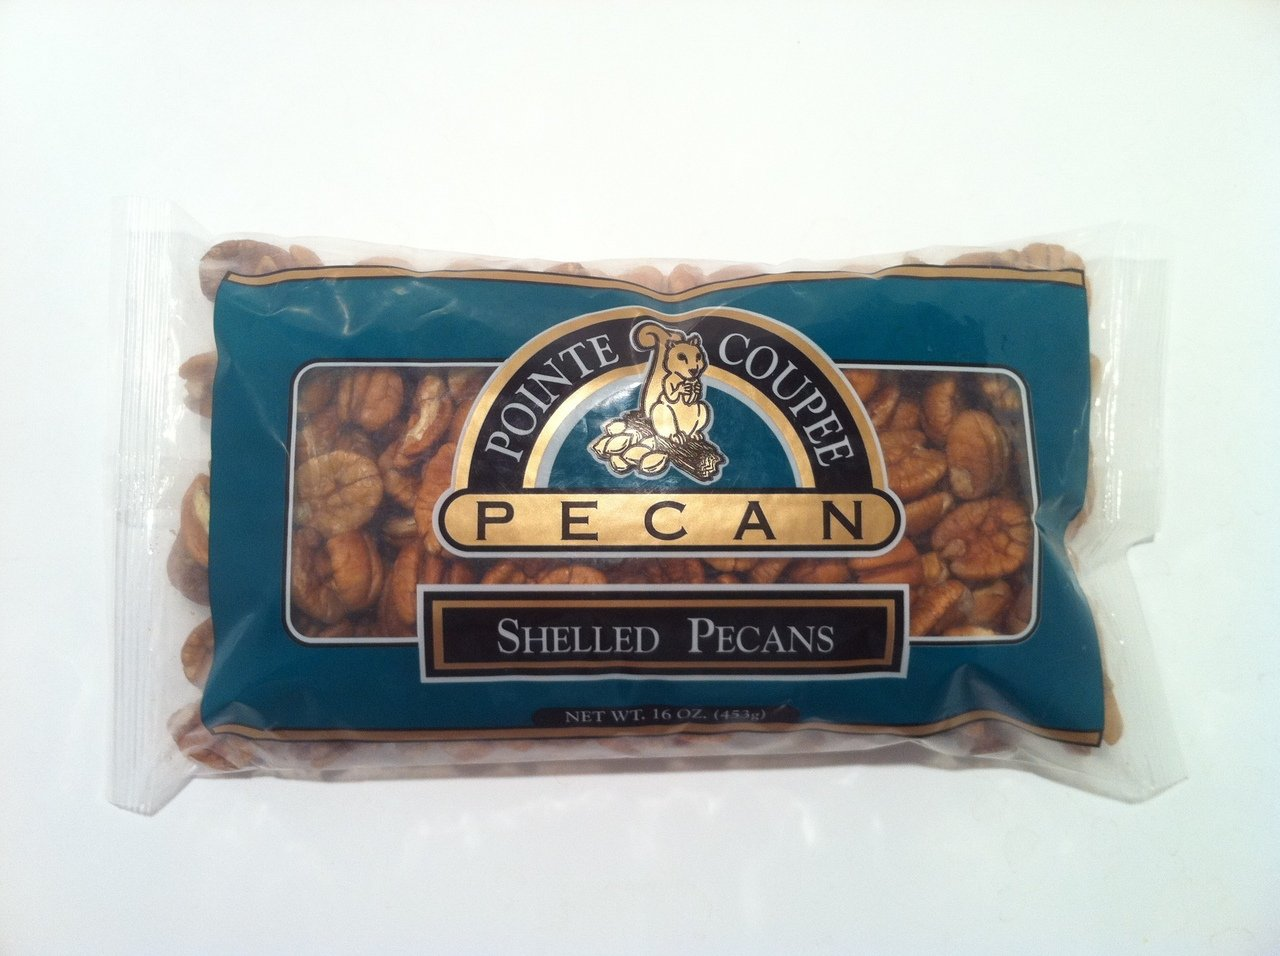 Pointe Coupee Pecan - PIECES quality At the price assurance Natural Shelled